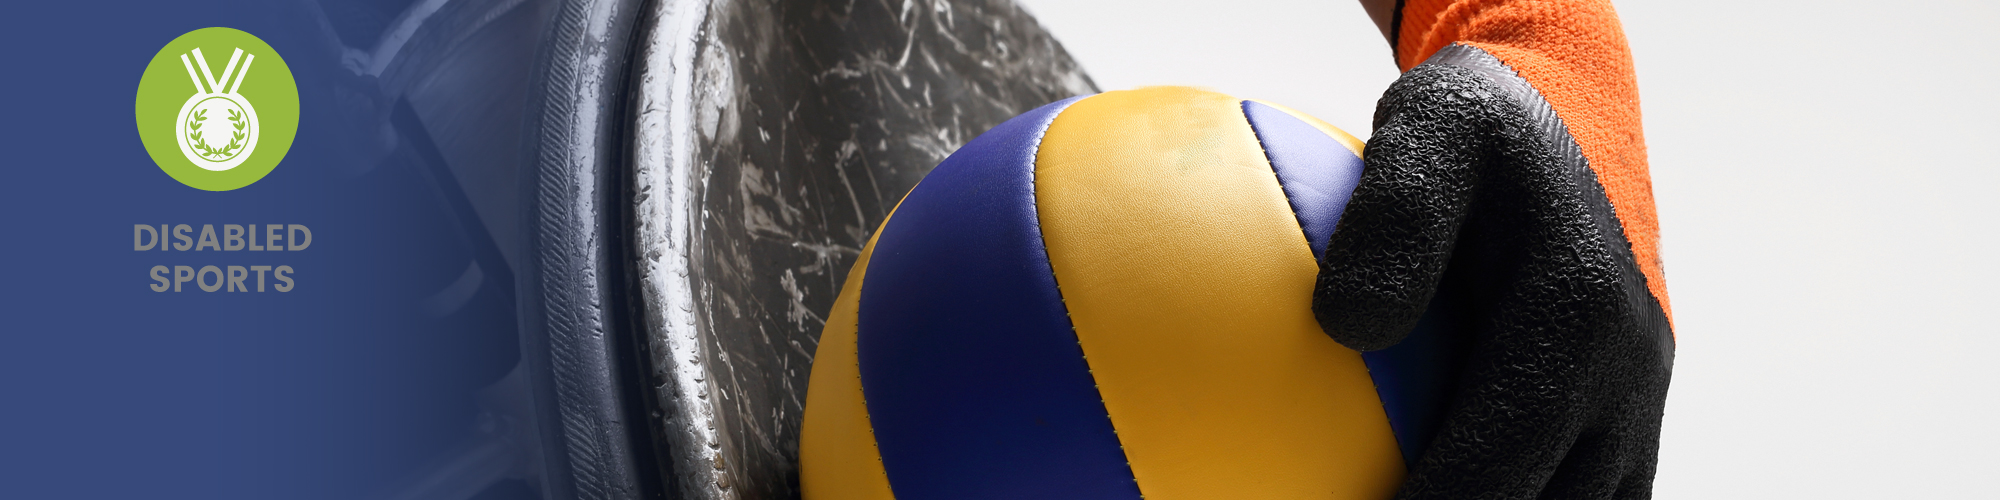 Home page banner image - disabled sports